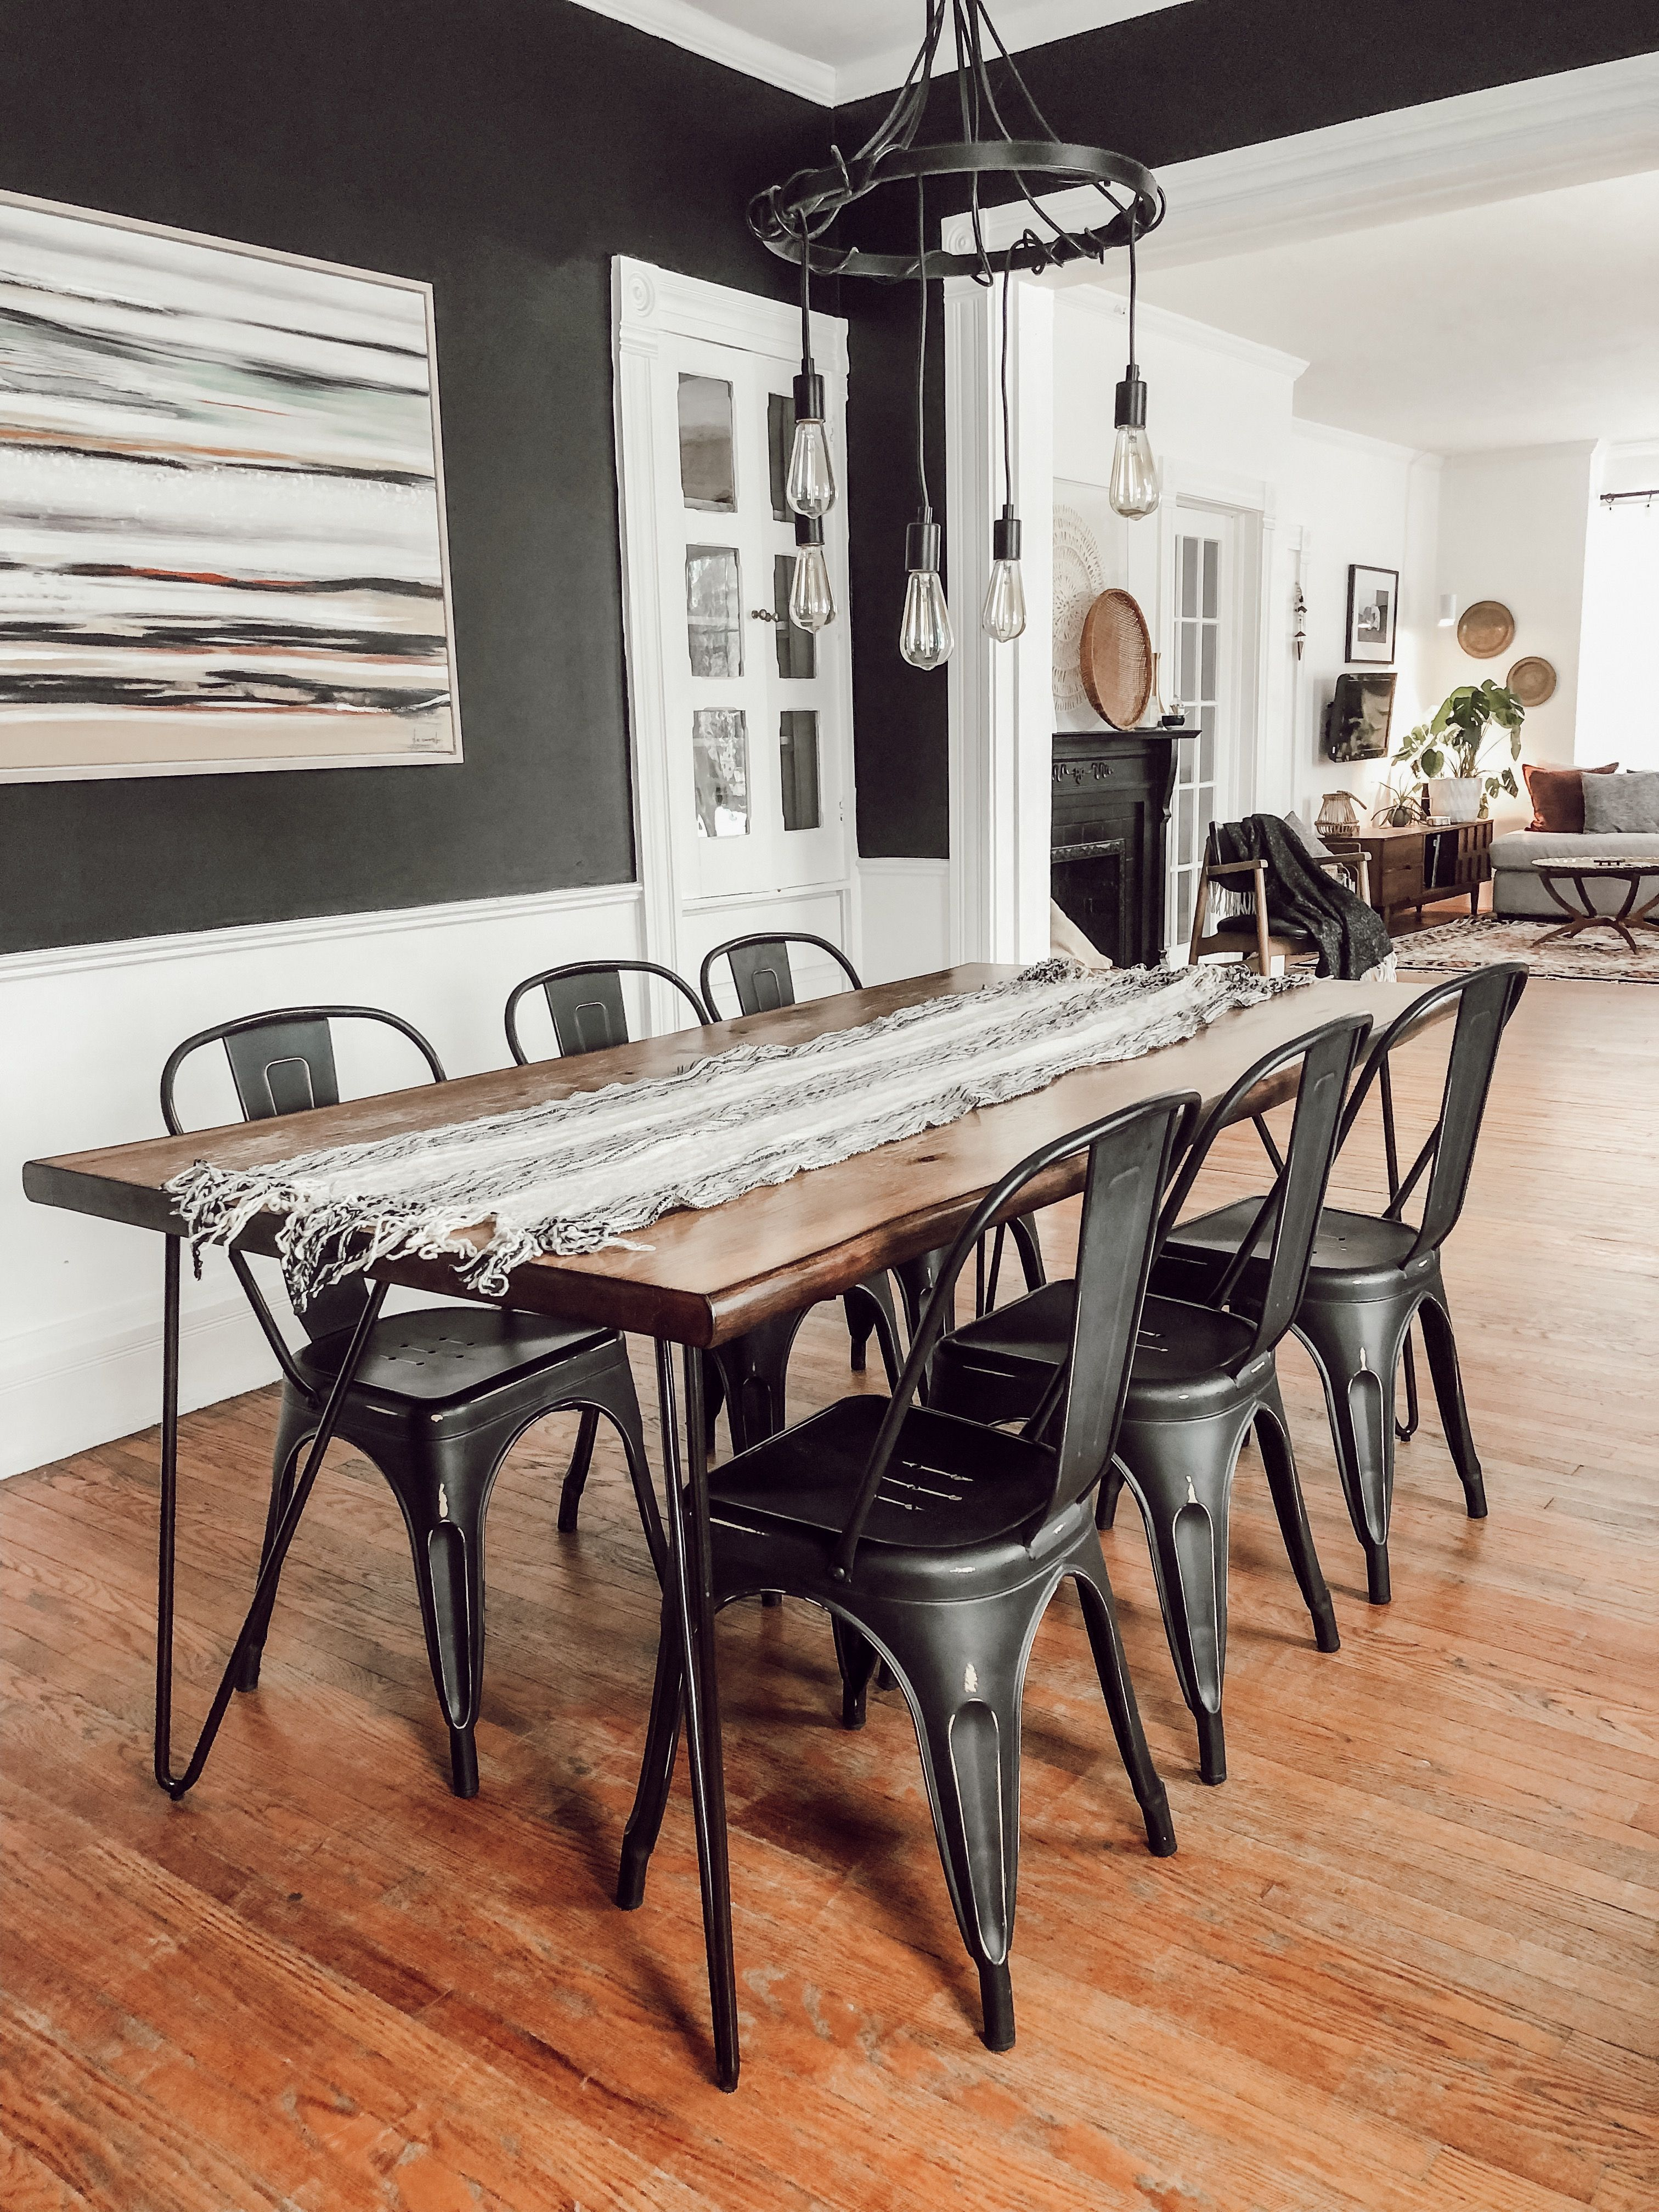 Funky Victorian Home Tour Black and white dining room with industrial, metal cha…